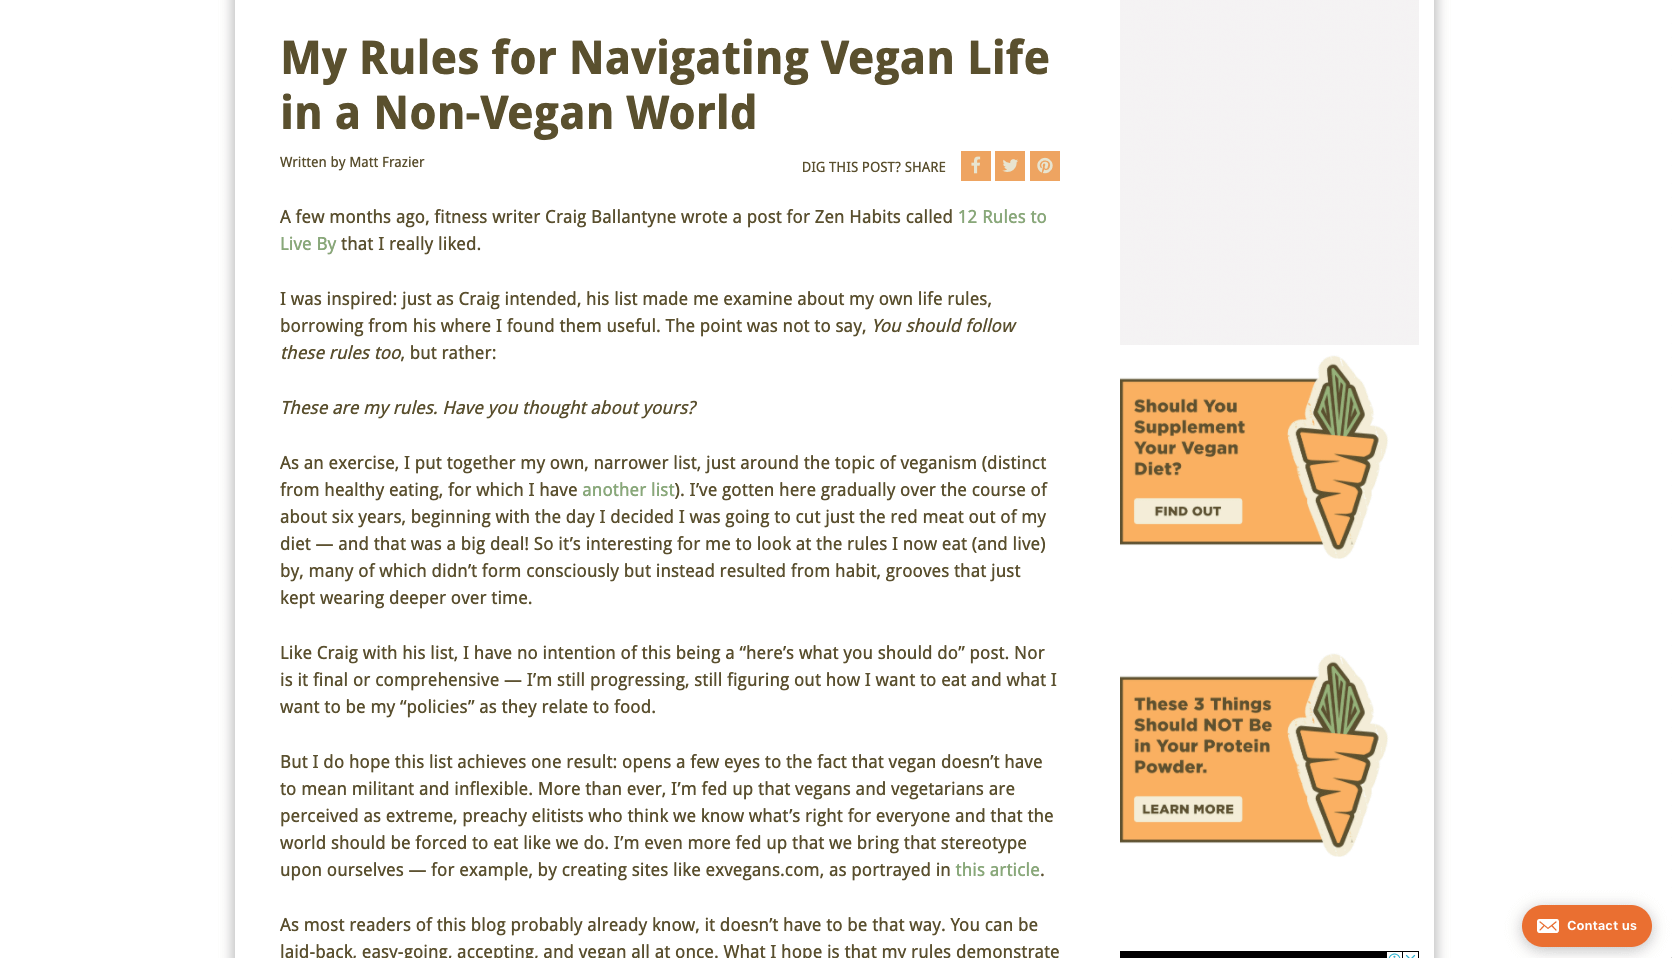 My Rules for Navigating Vegan Life in a Non Vegan World